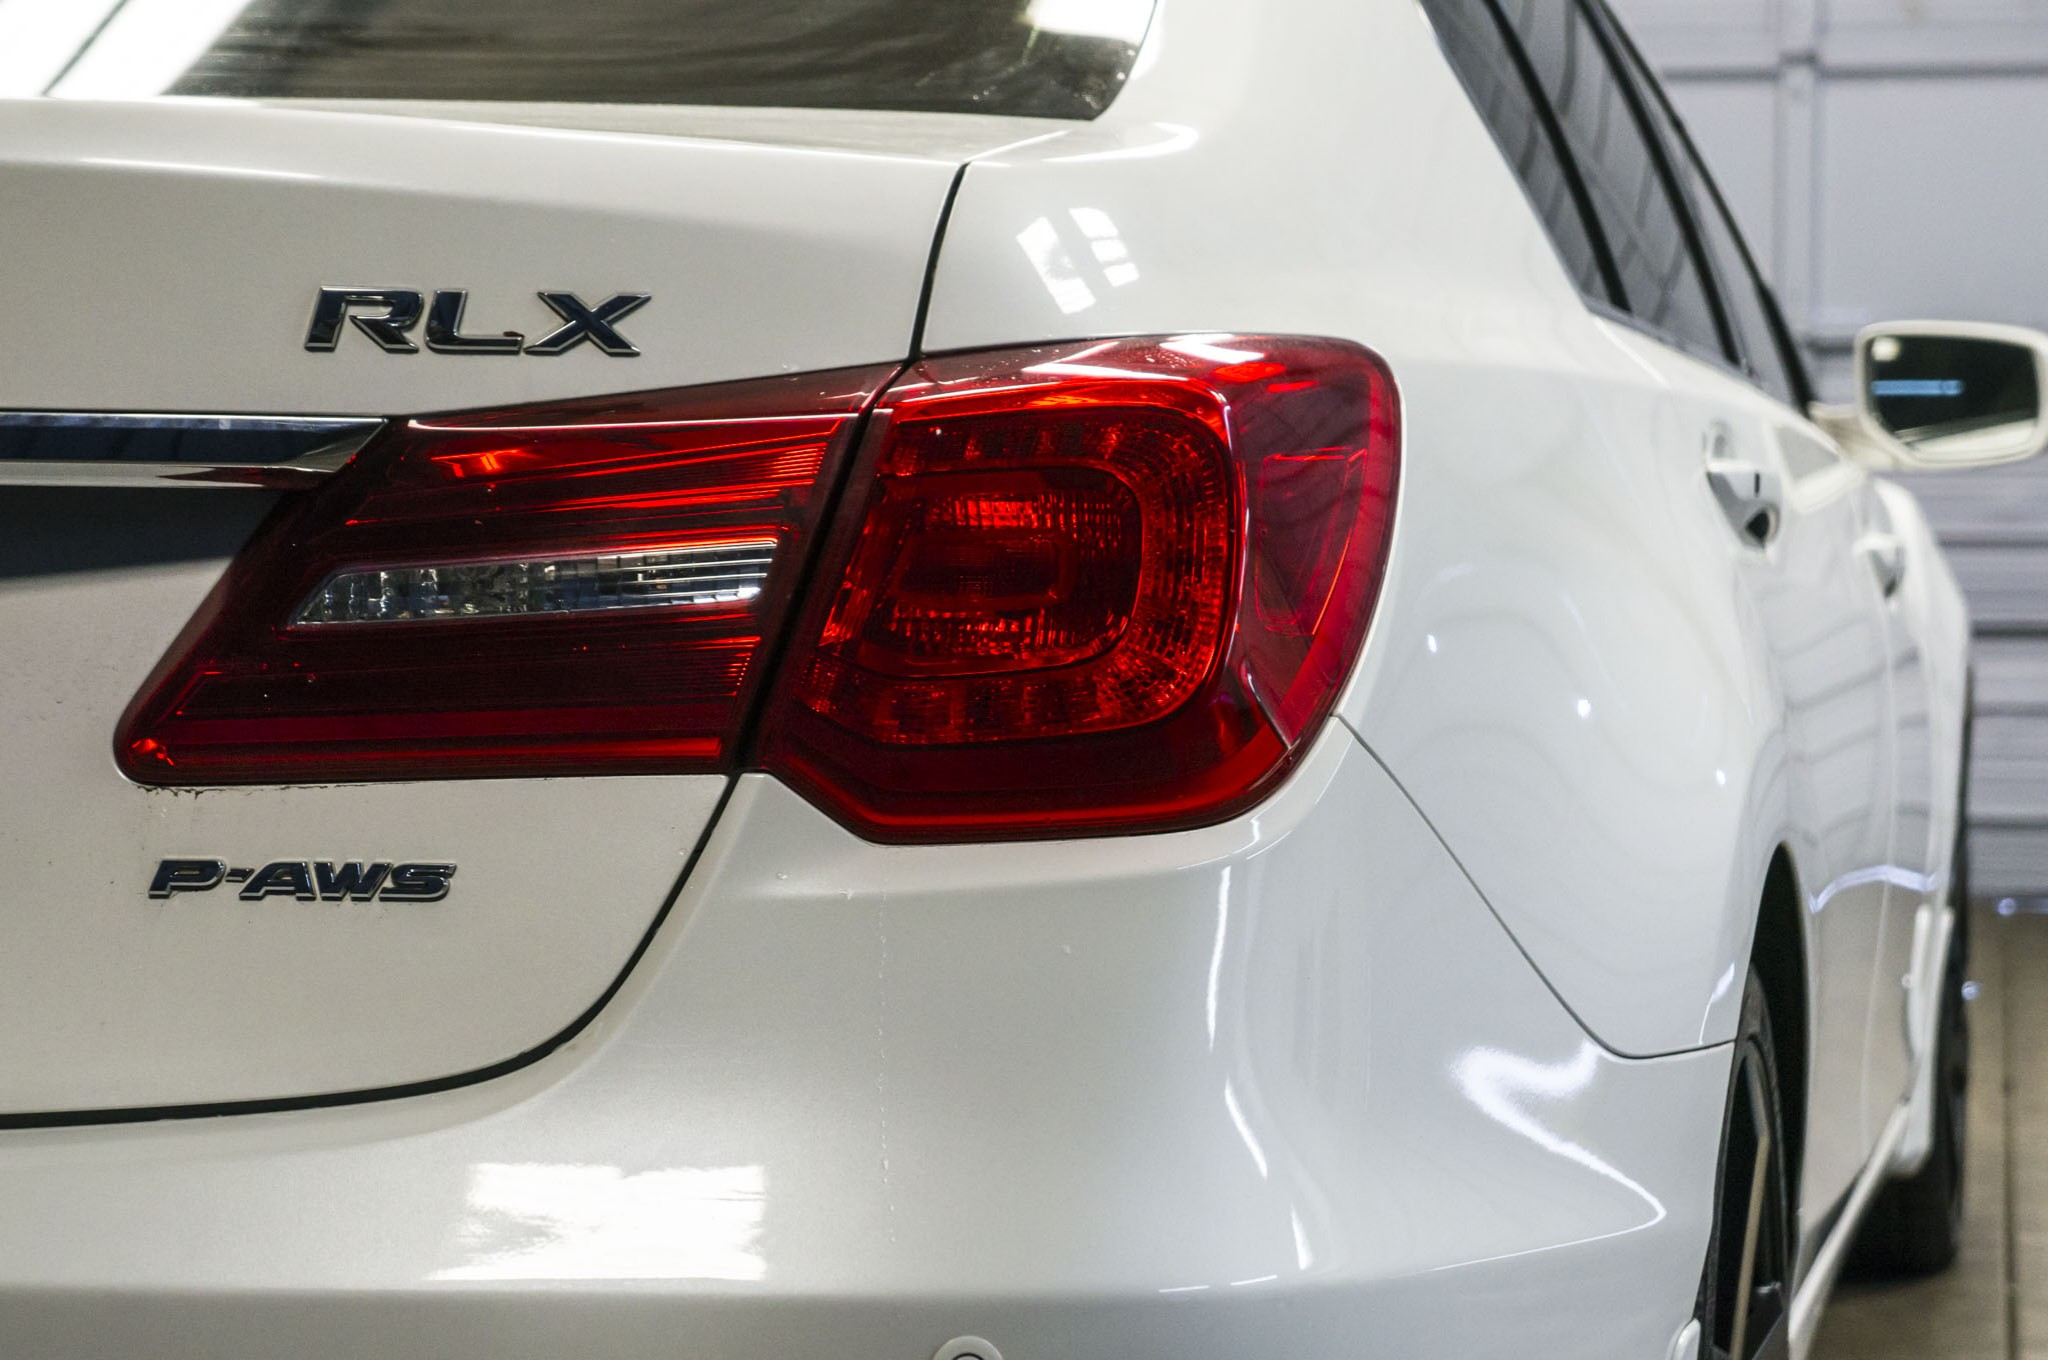 used c htm acura park sale edgewater tech rlx near for w stock